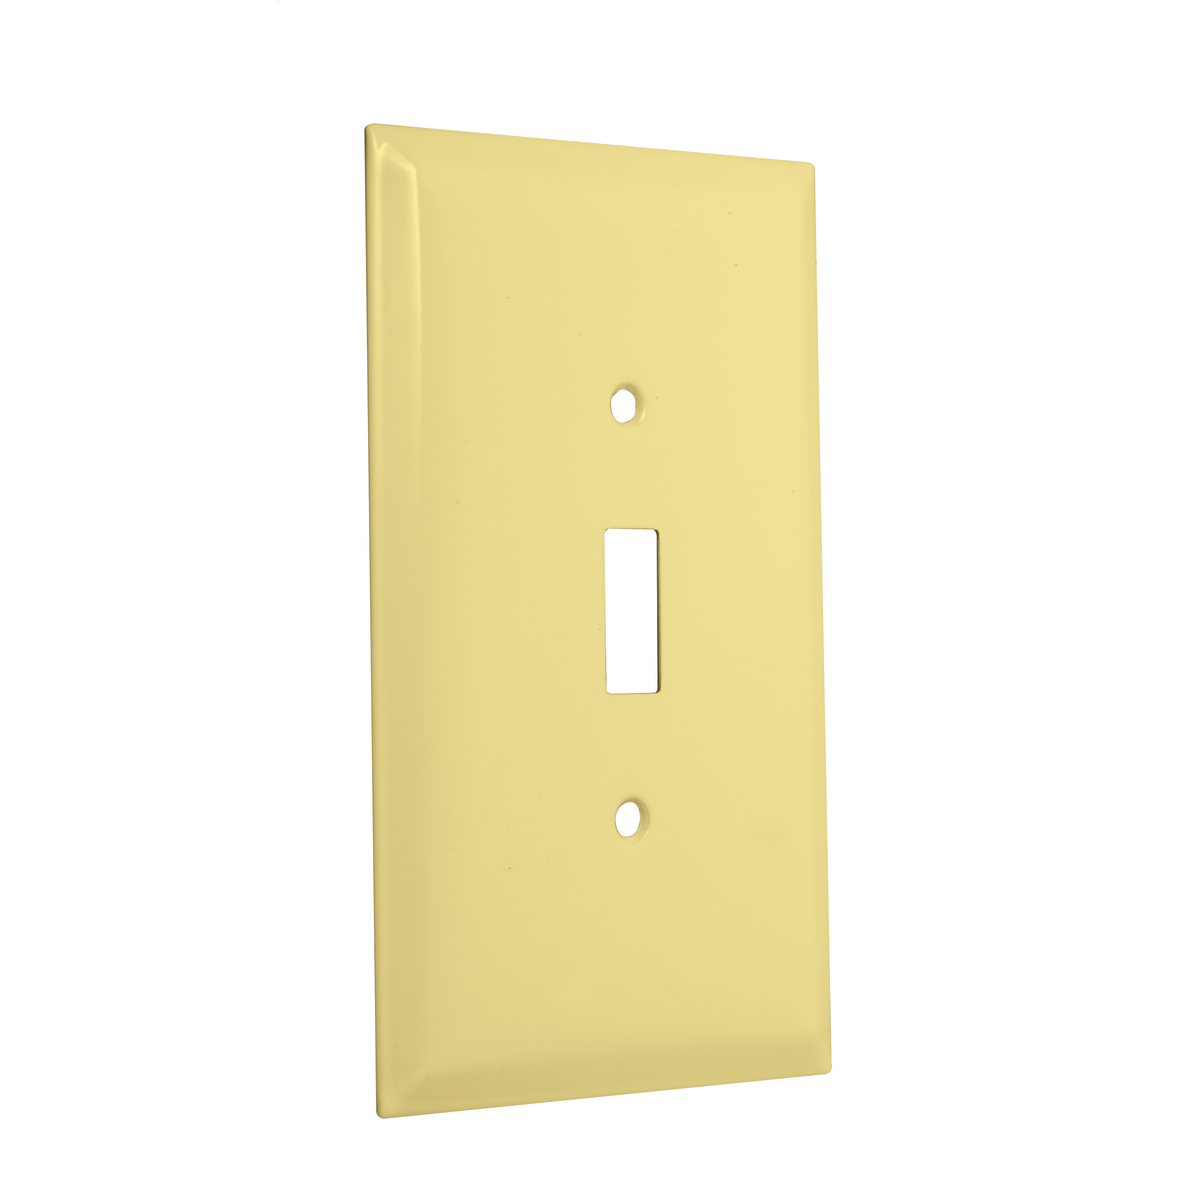 Wall Plates and Covers | United Electric